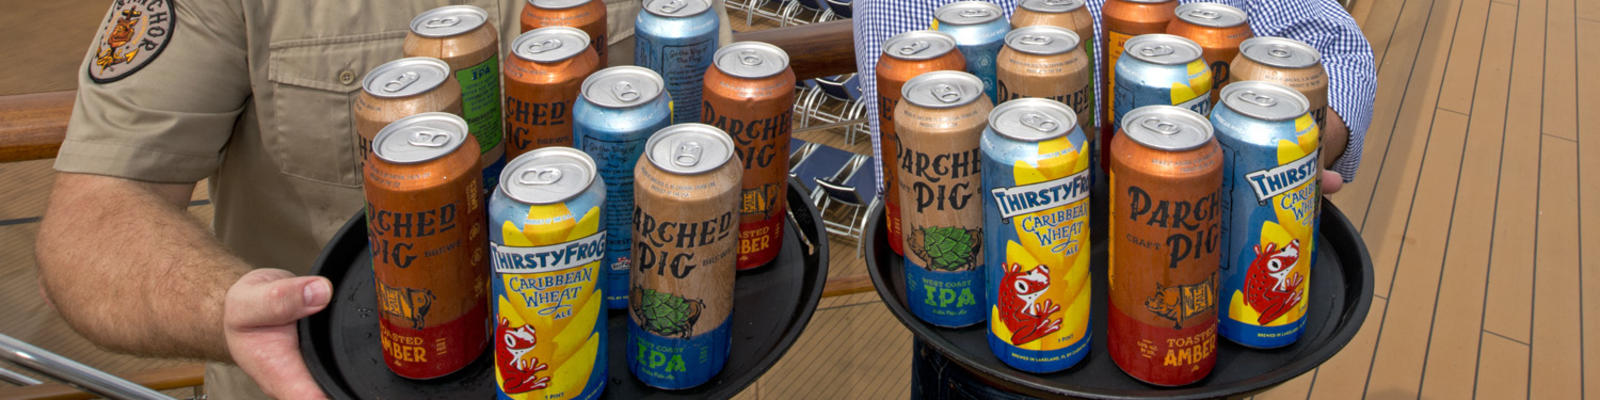 Carnival Cruise Line has become the first cruise line to can and sell its own private label craft beer.  (Photo: Carnival Cruise Line)